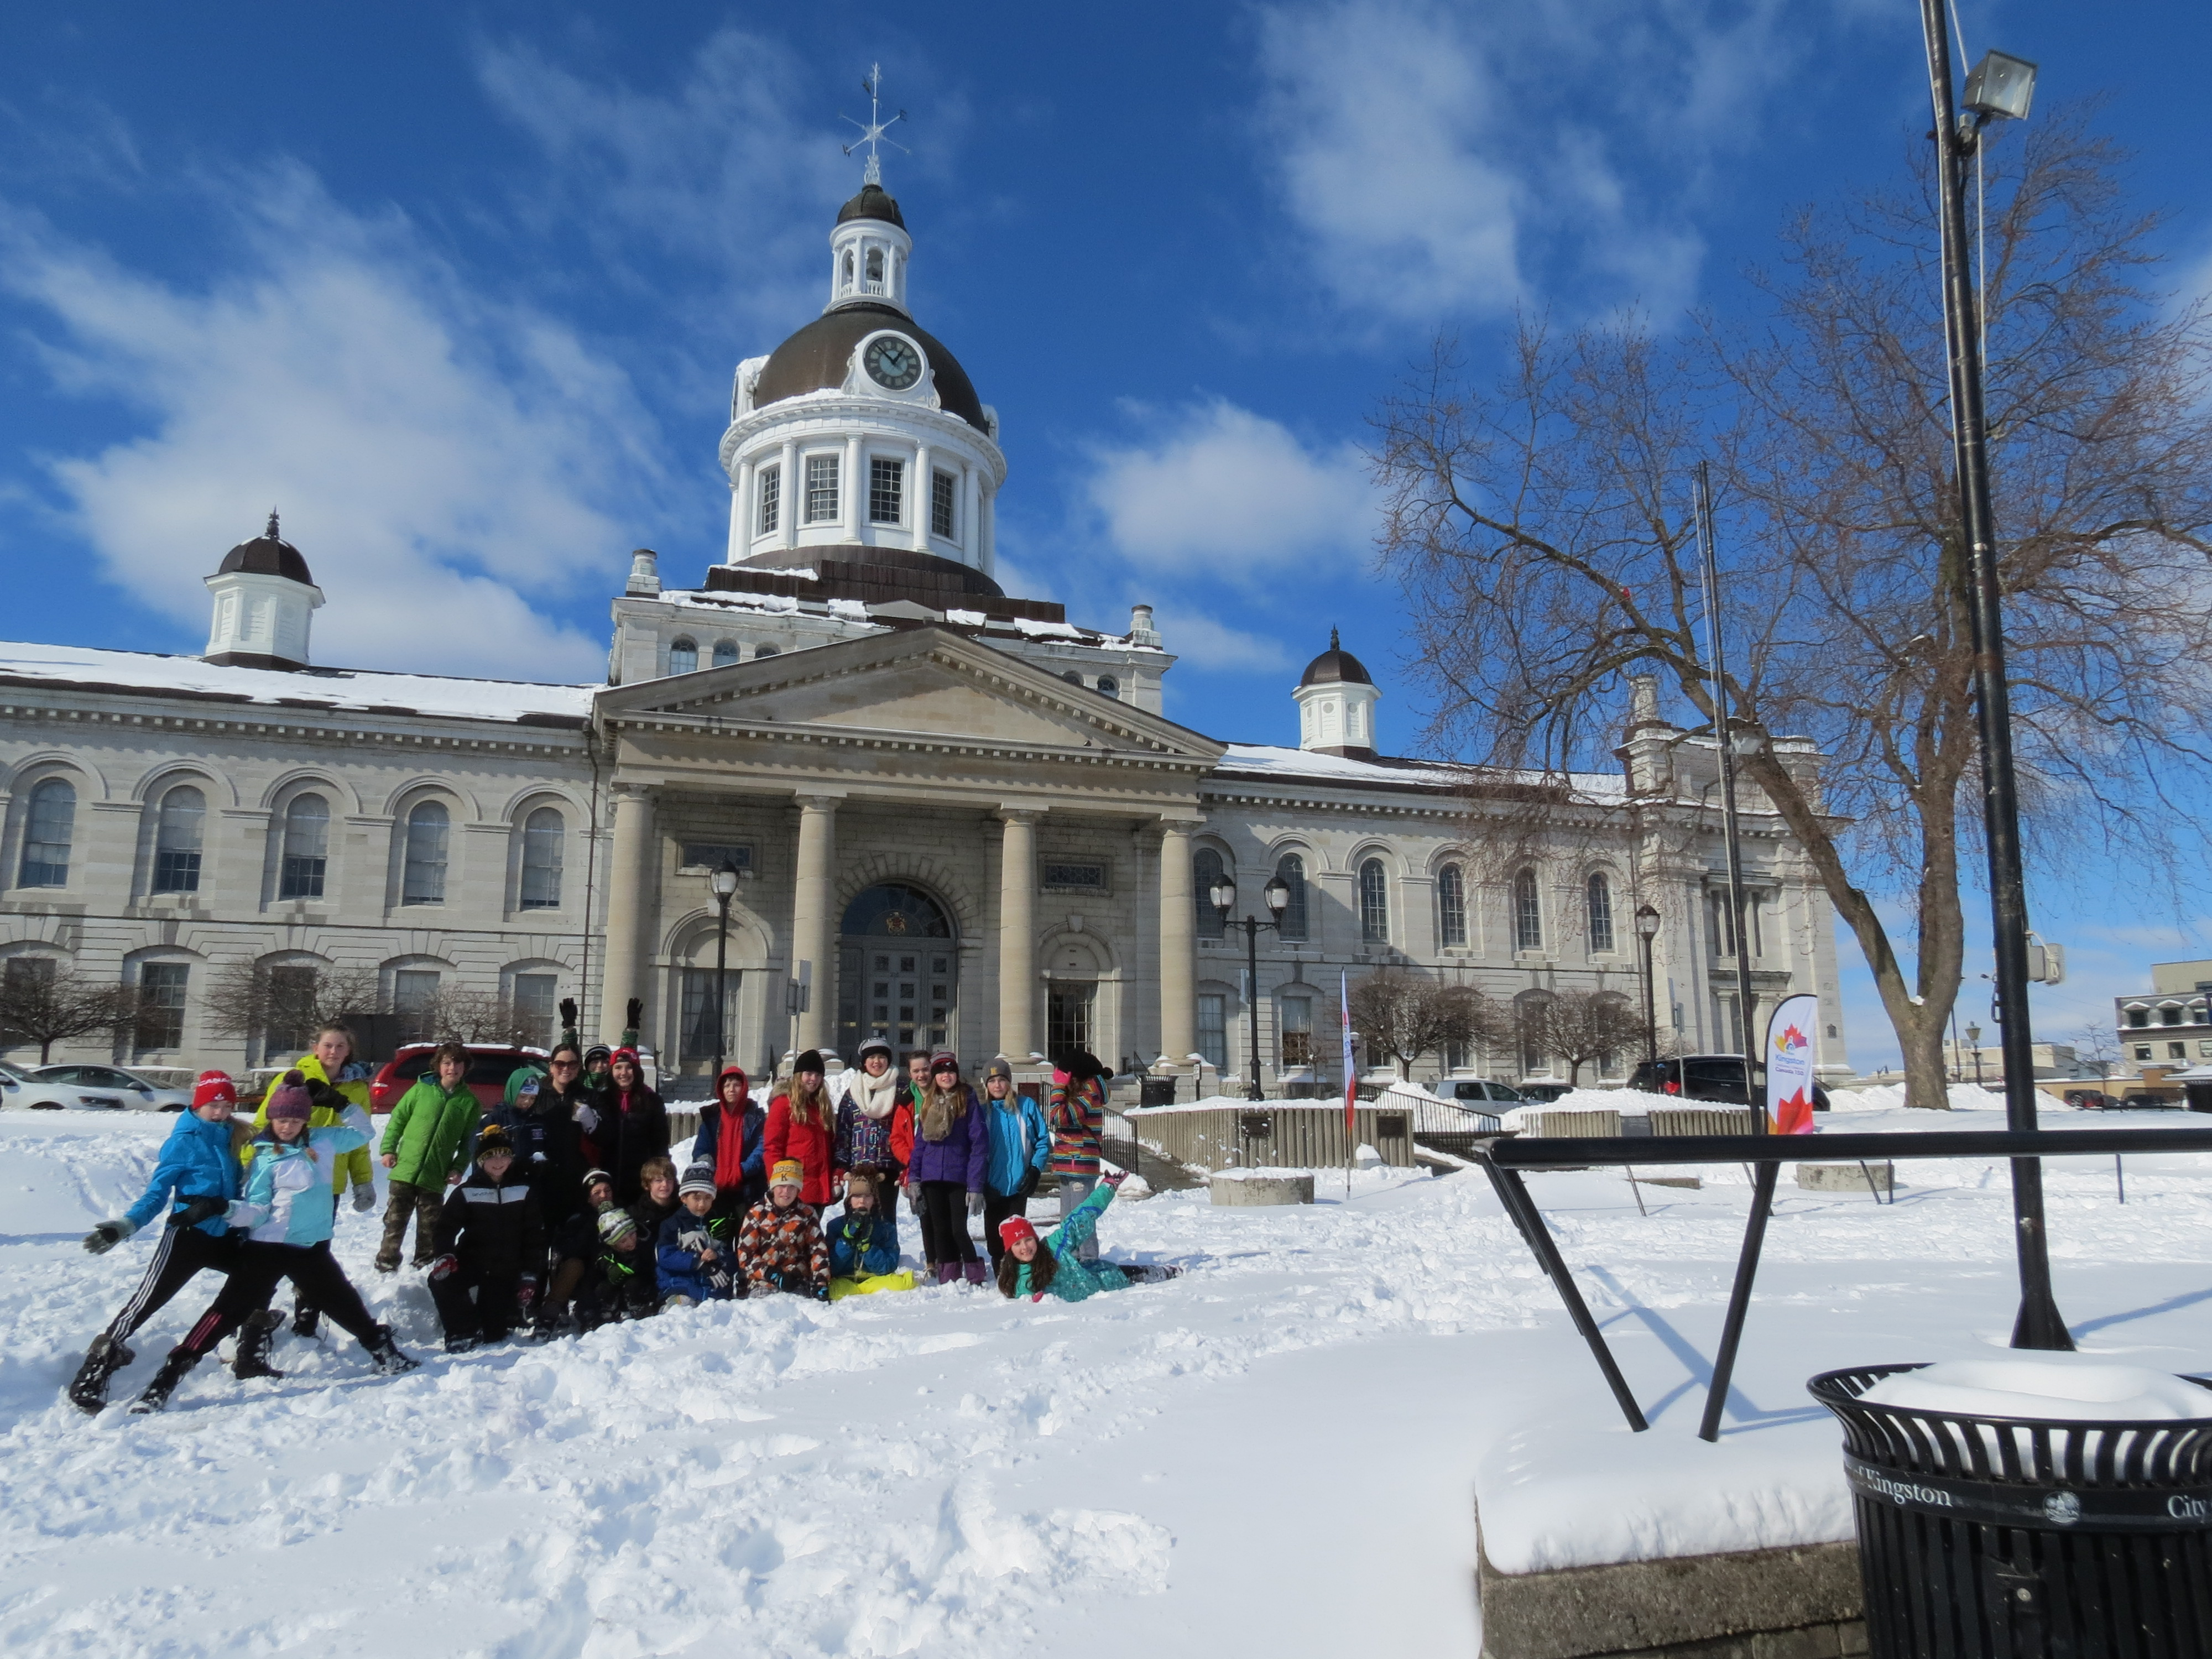 Students in front of Kingston City Hall a National Historic Site